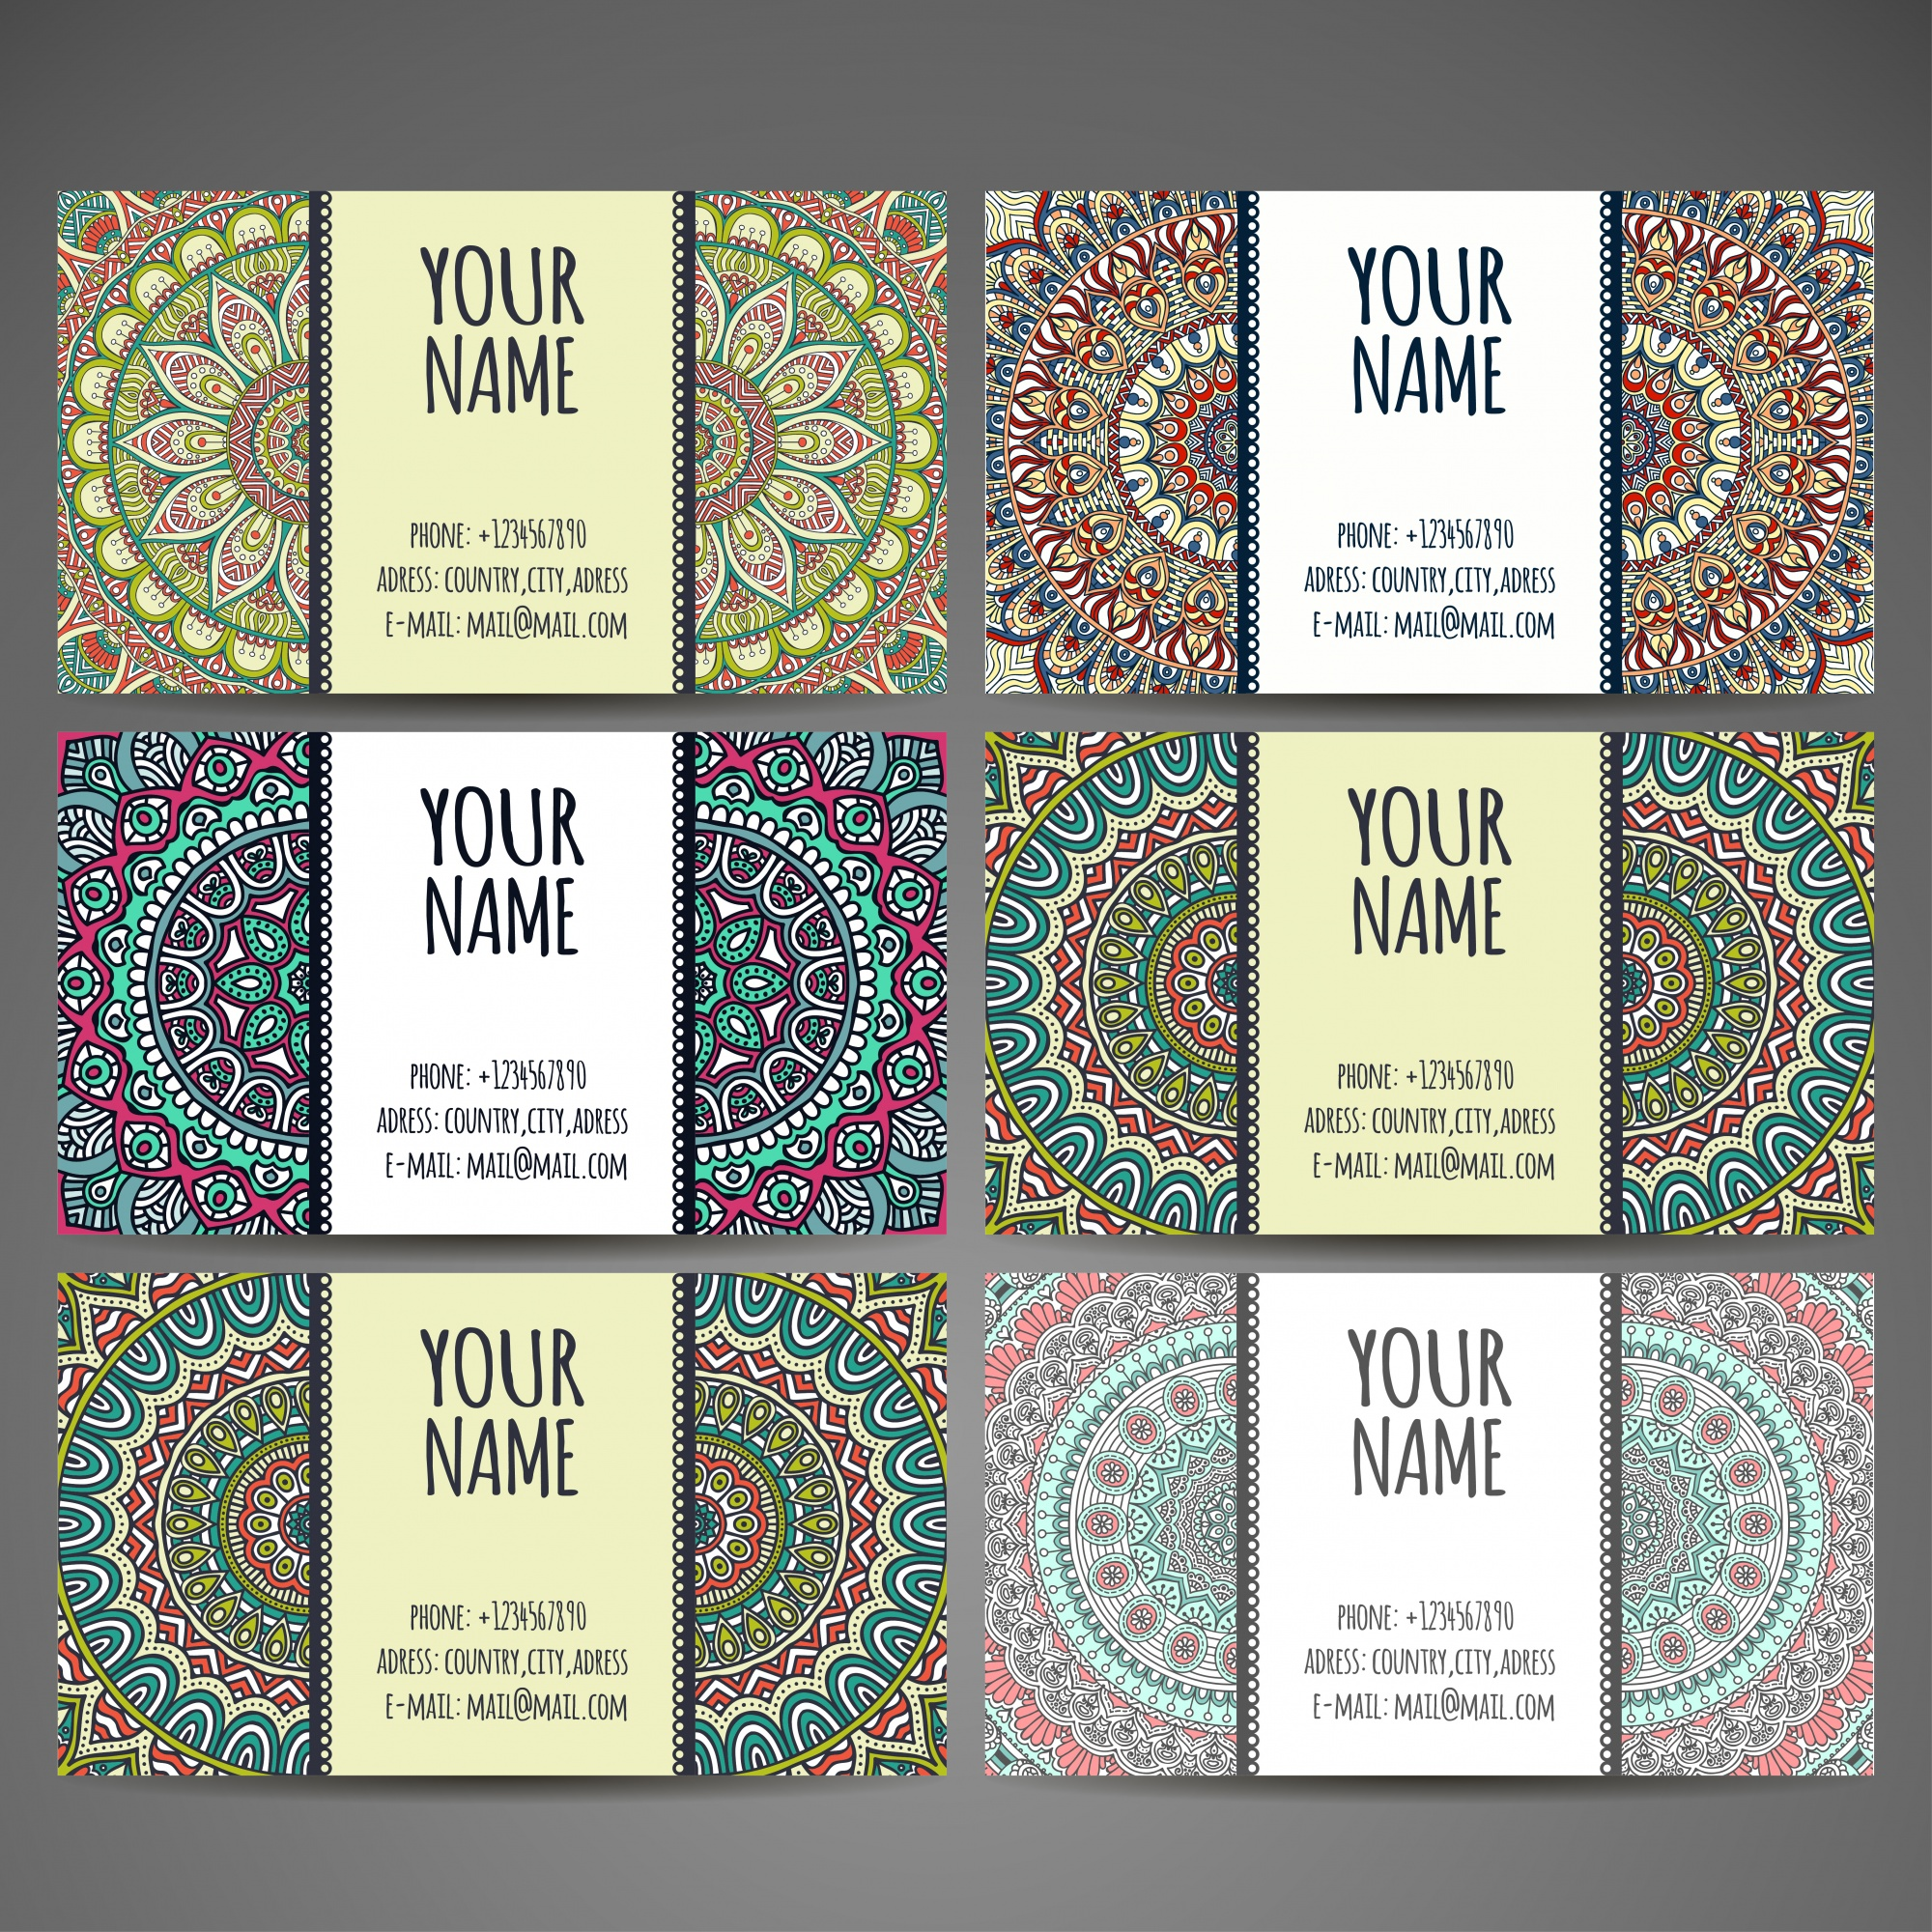 Ethnic style business card collection